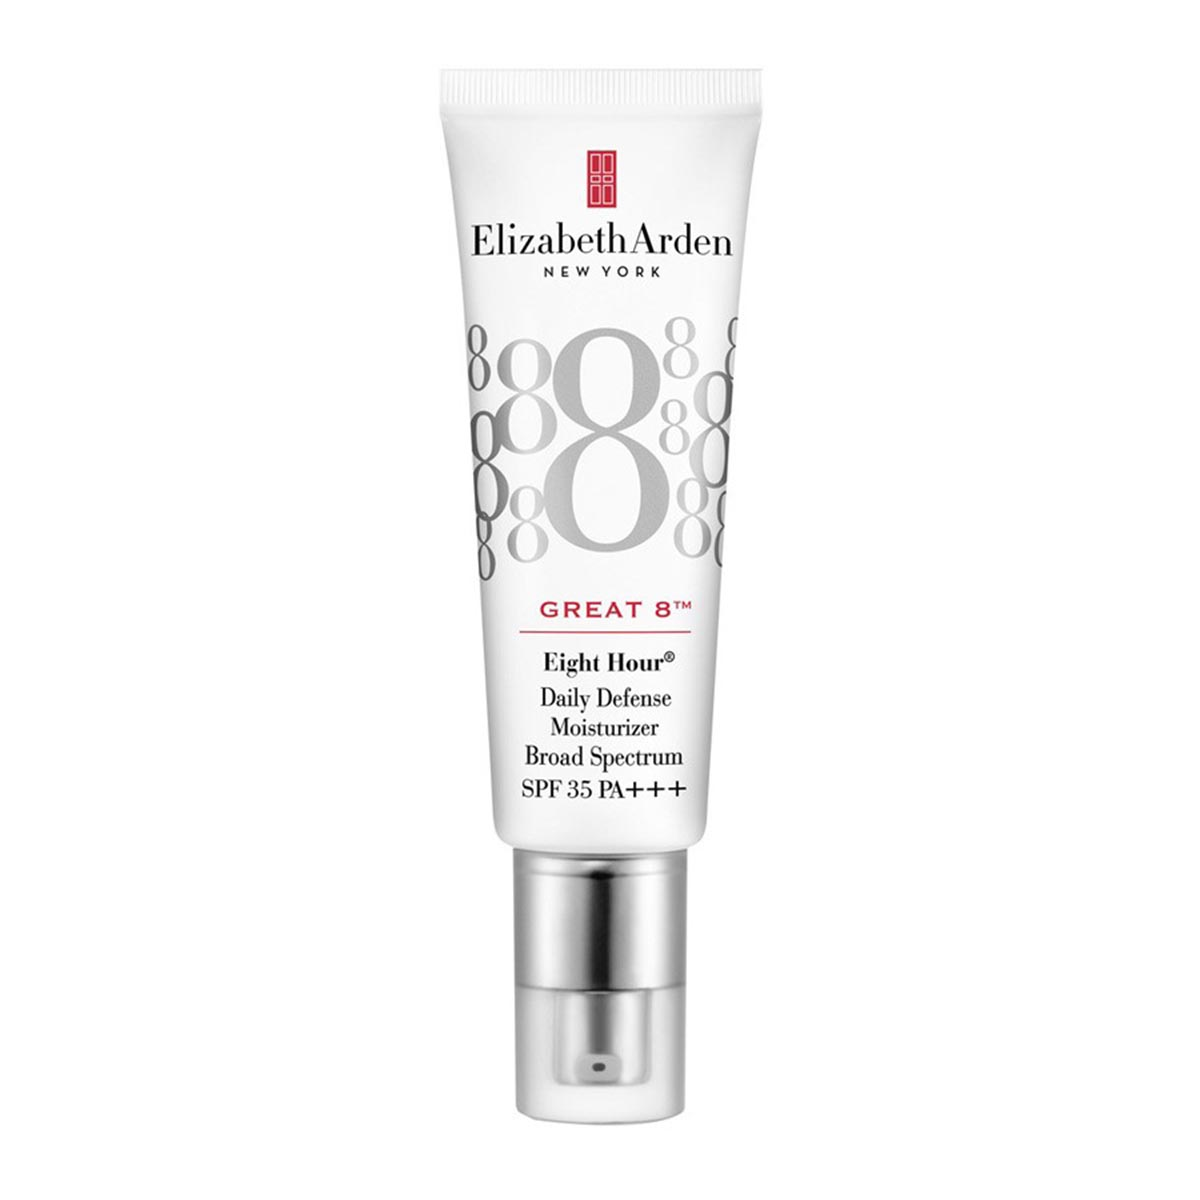 Elizabeth arden eight hour great 8 spf35 daily defense moisturizer 50ml